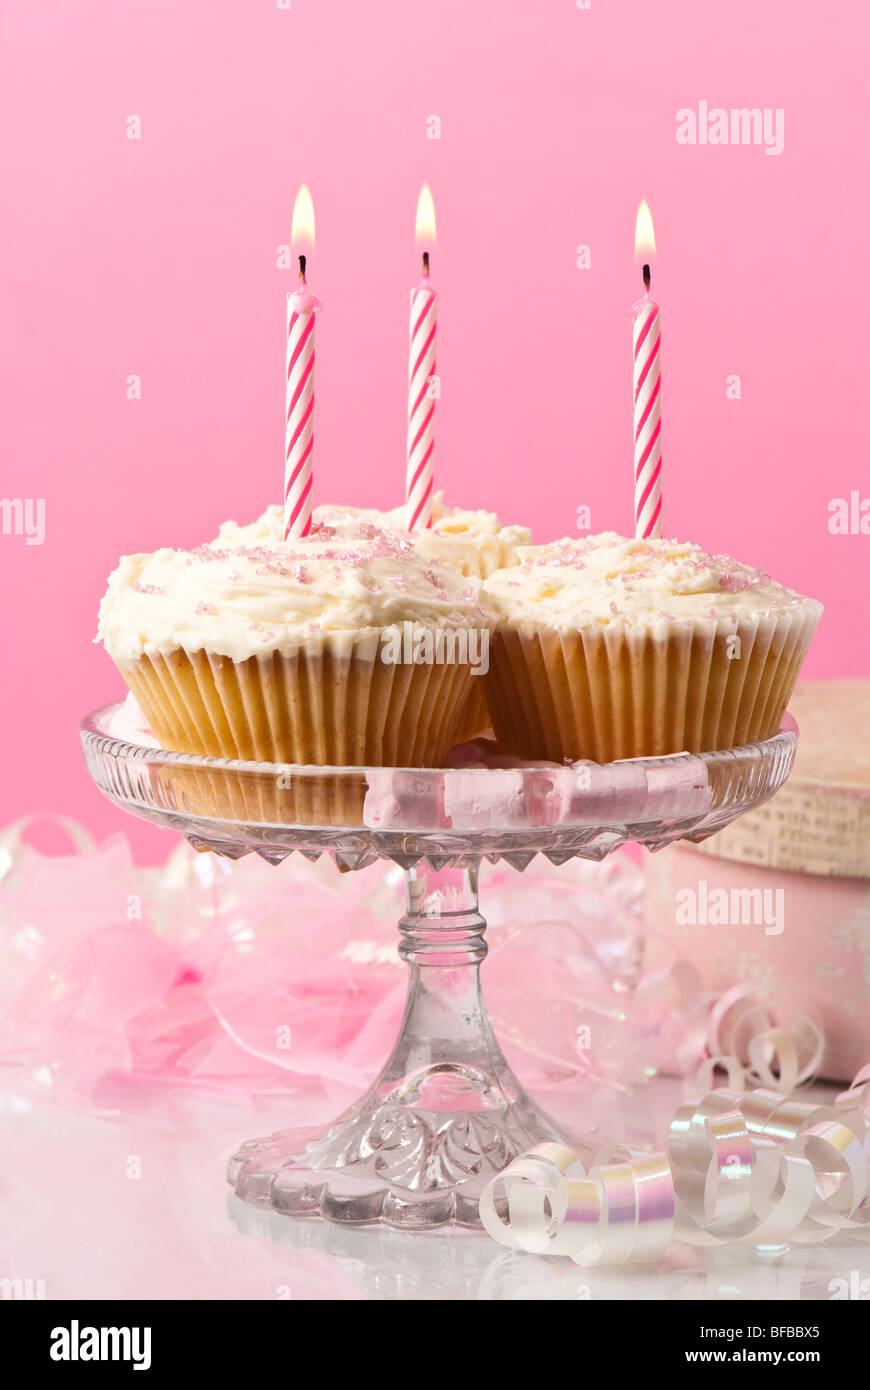 Birthday cupcakes with candles - pink theme - Stock Image